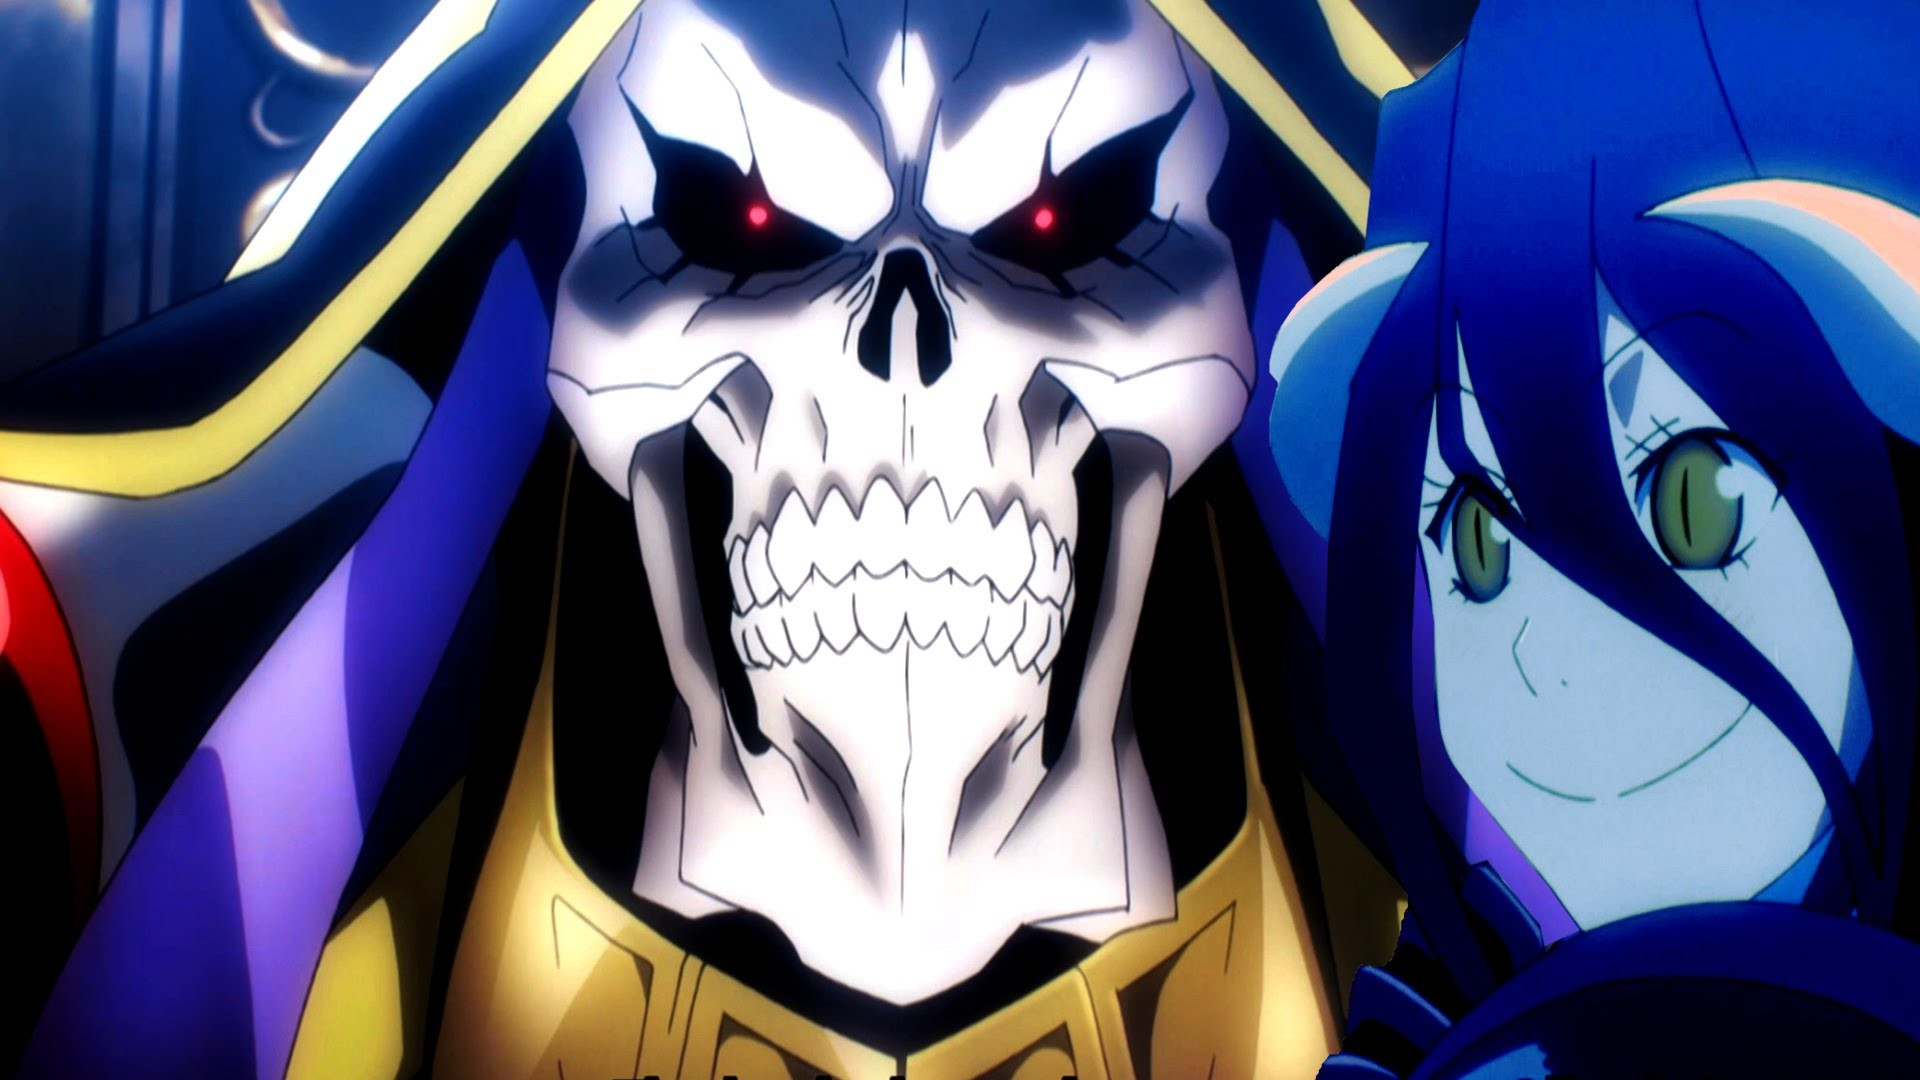 Res: 1920x1080, Overlord Episode 4 オーバーロード Anime Review - Ainz The Overlord - YouTube